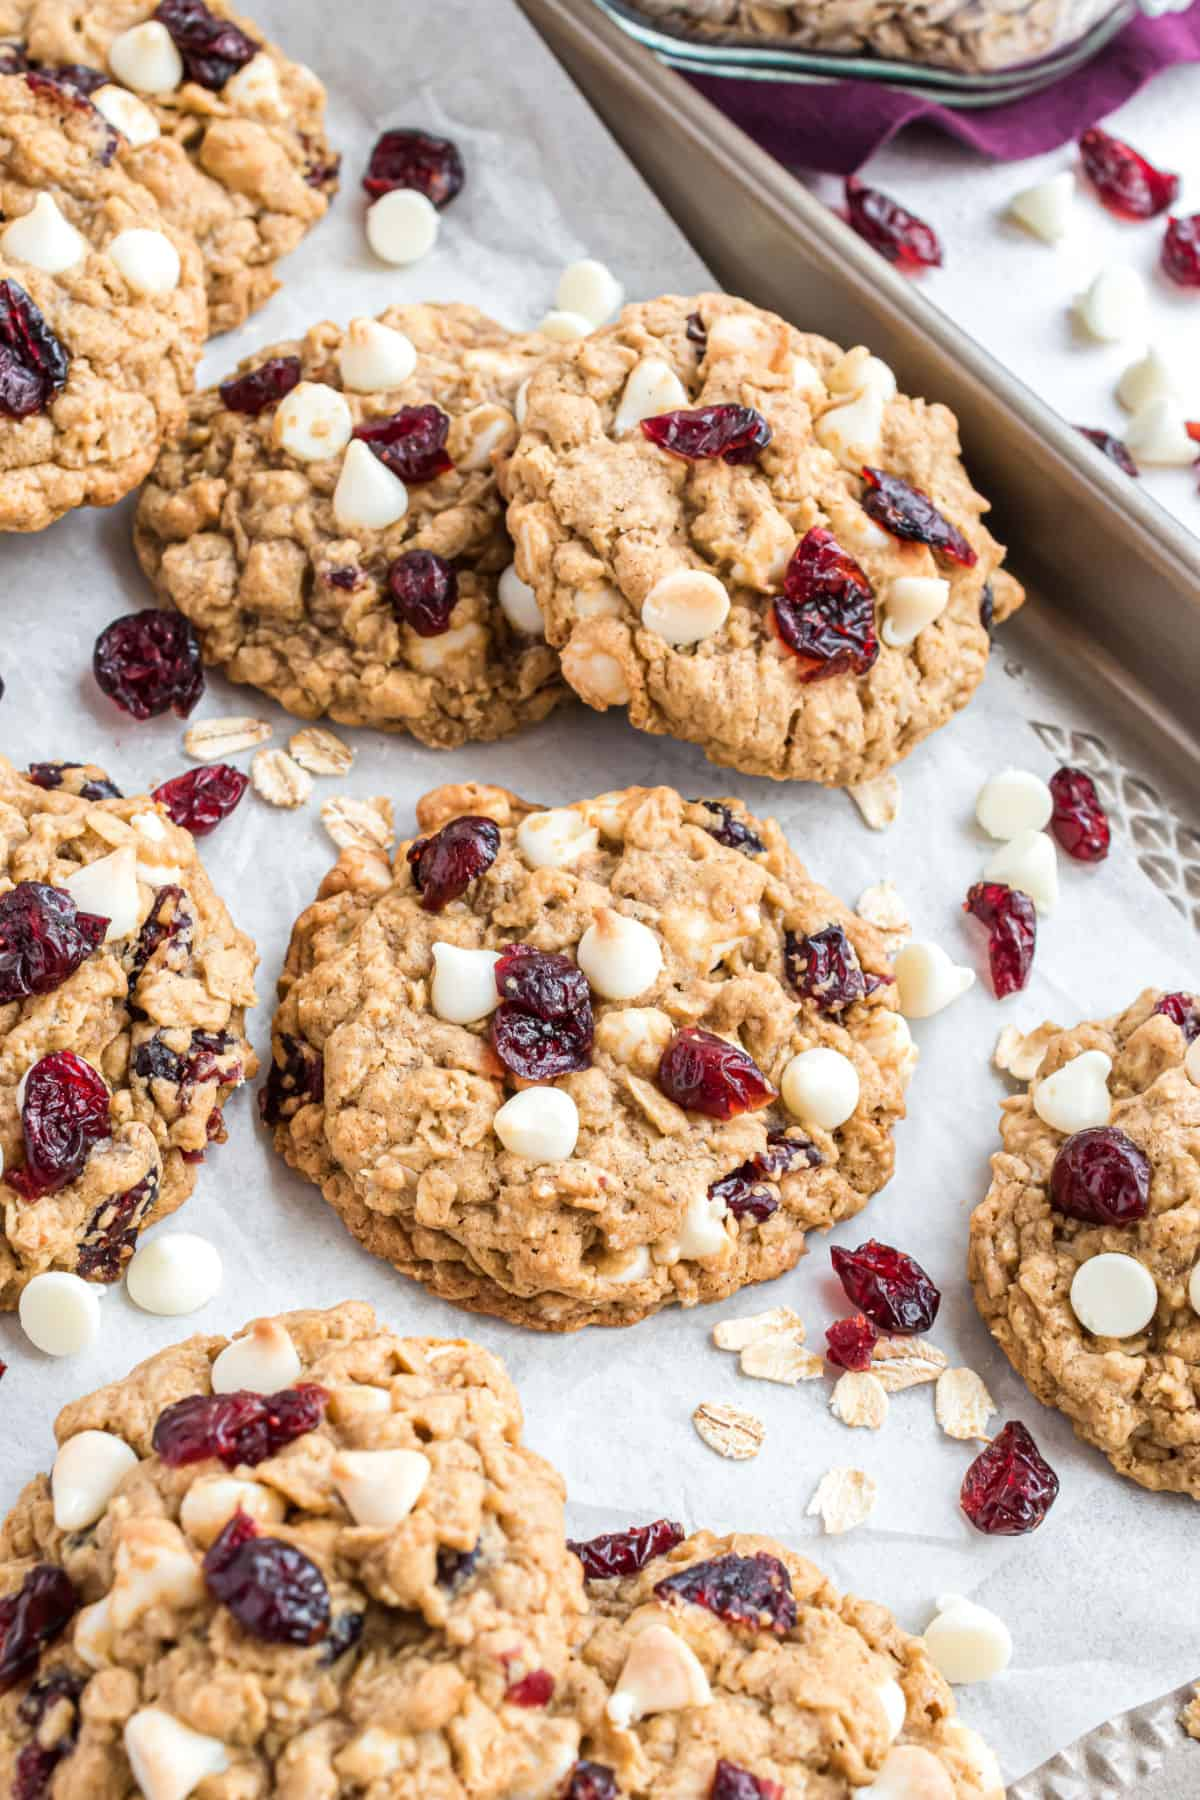 Stacks of white chocolate oatmeal cranberry cookies on a parchment paper lined cookie sheet.